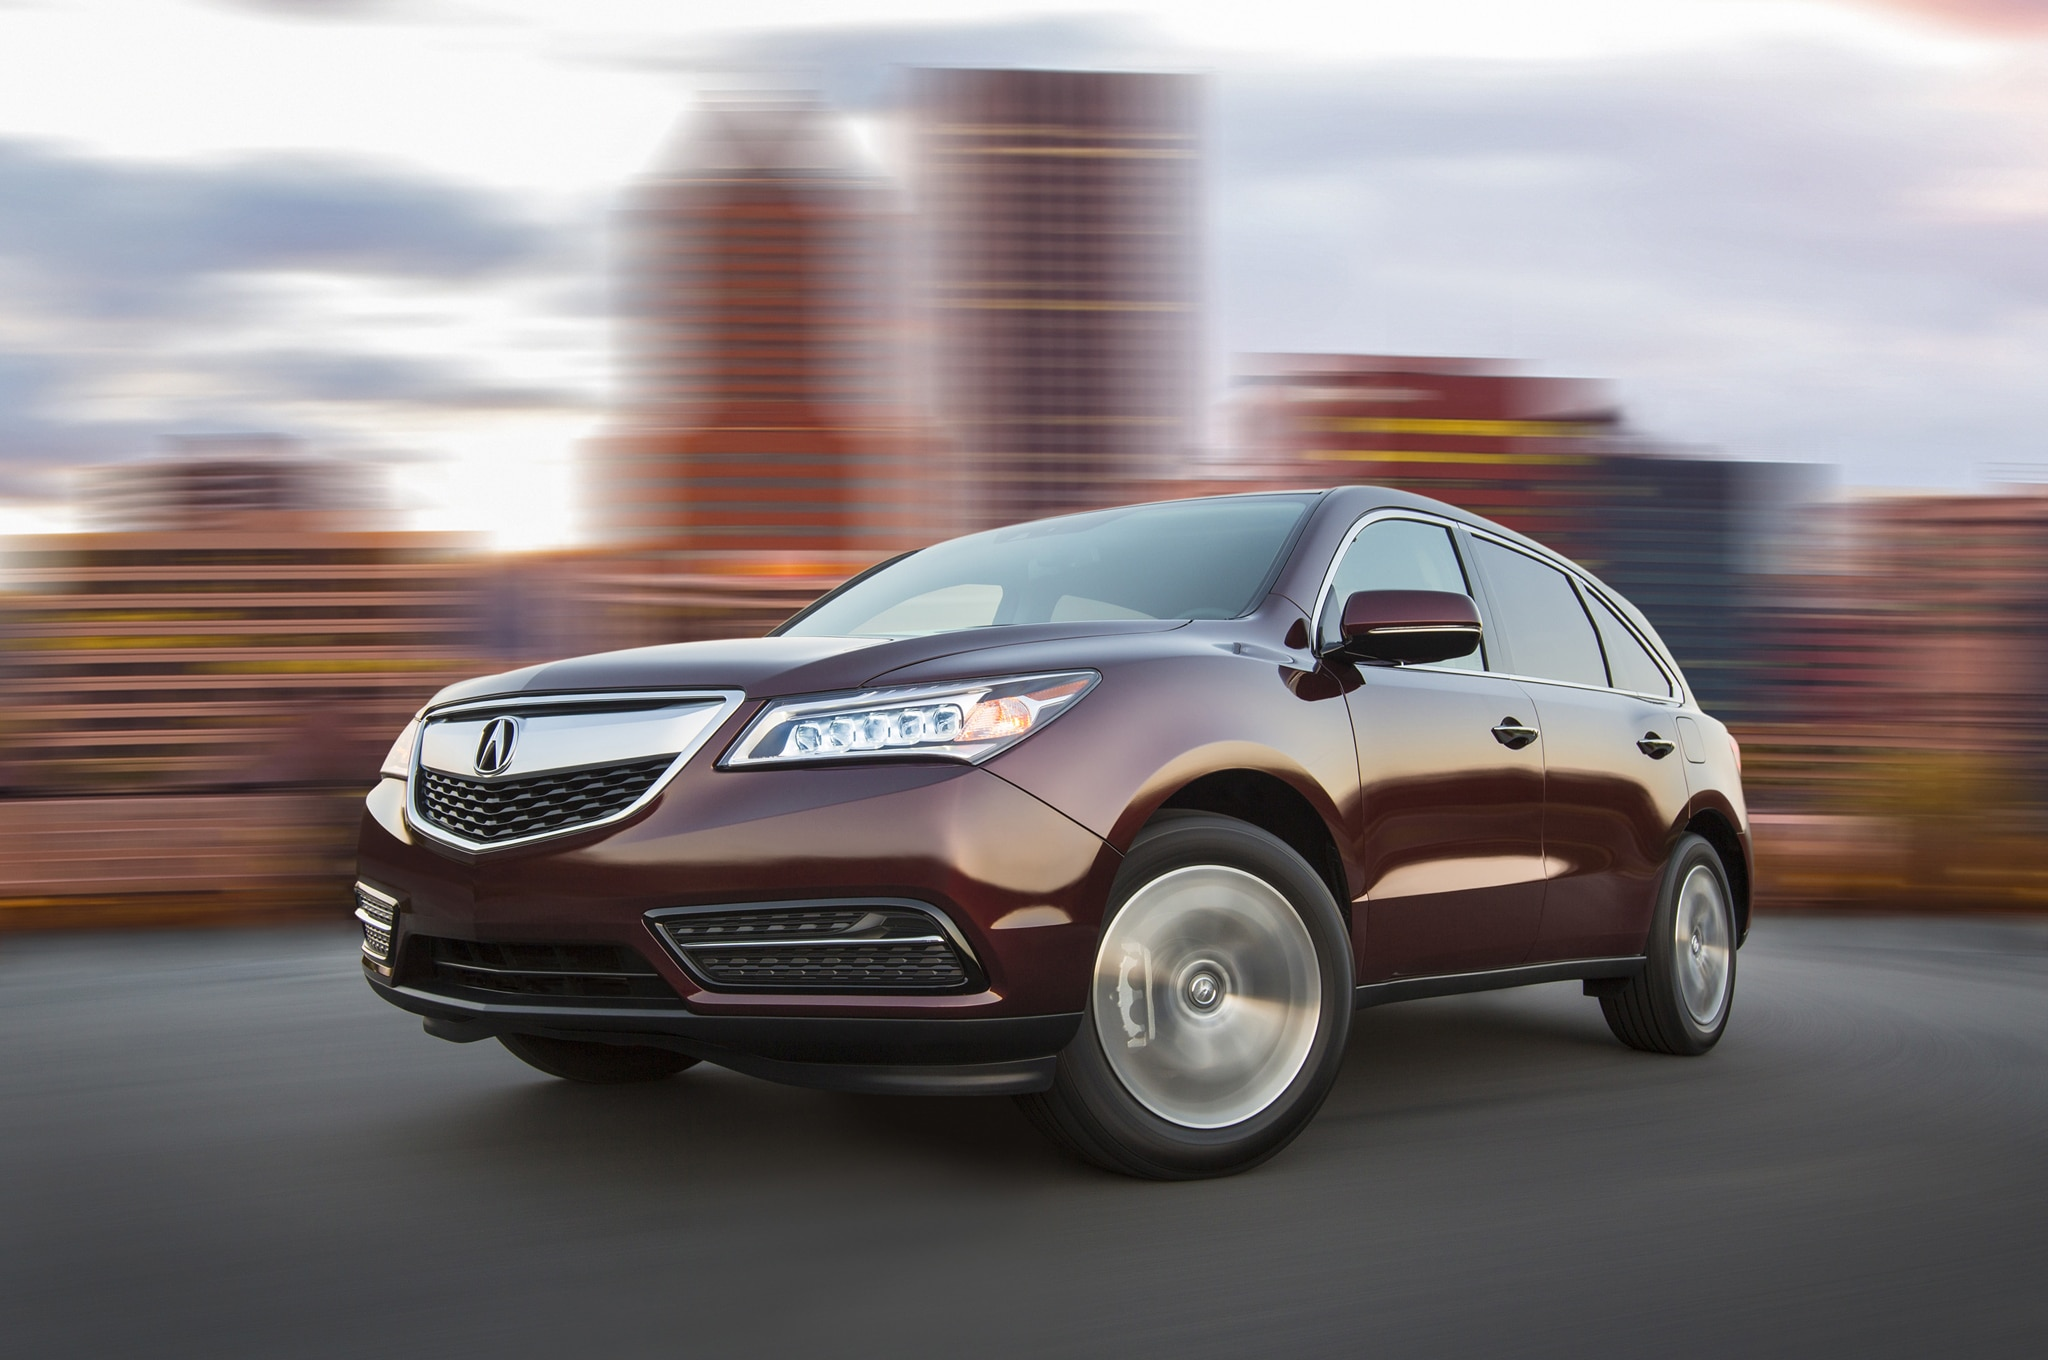 2014 Acura MDX Front Three Quarters In Motion 061